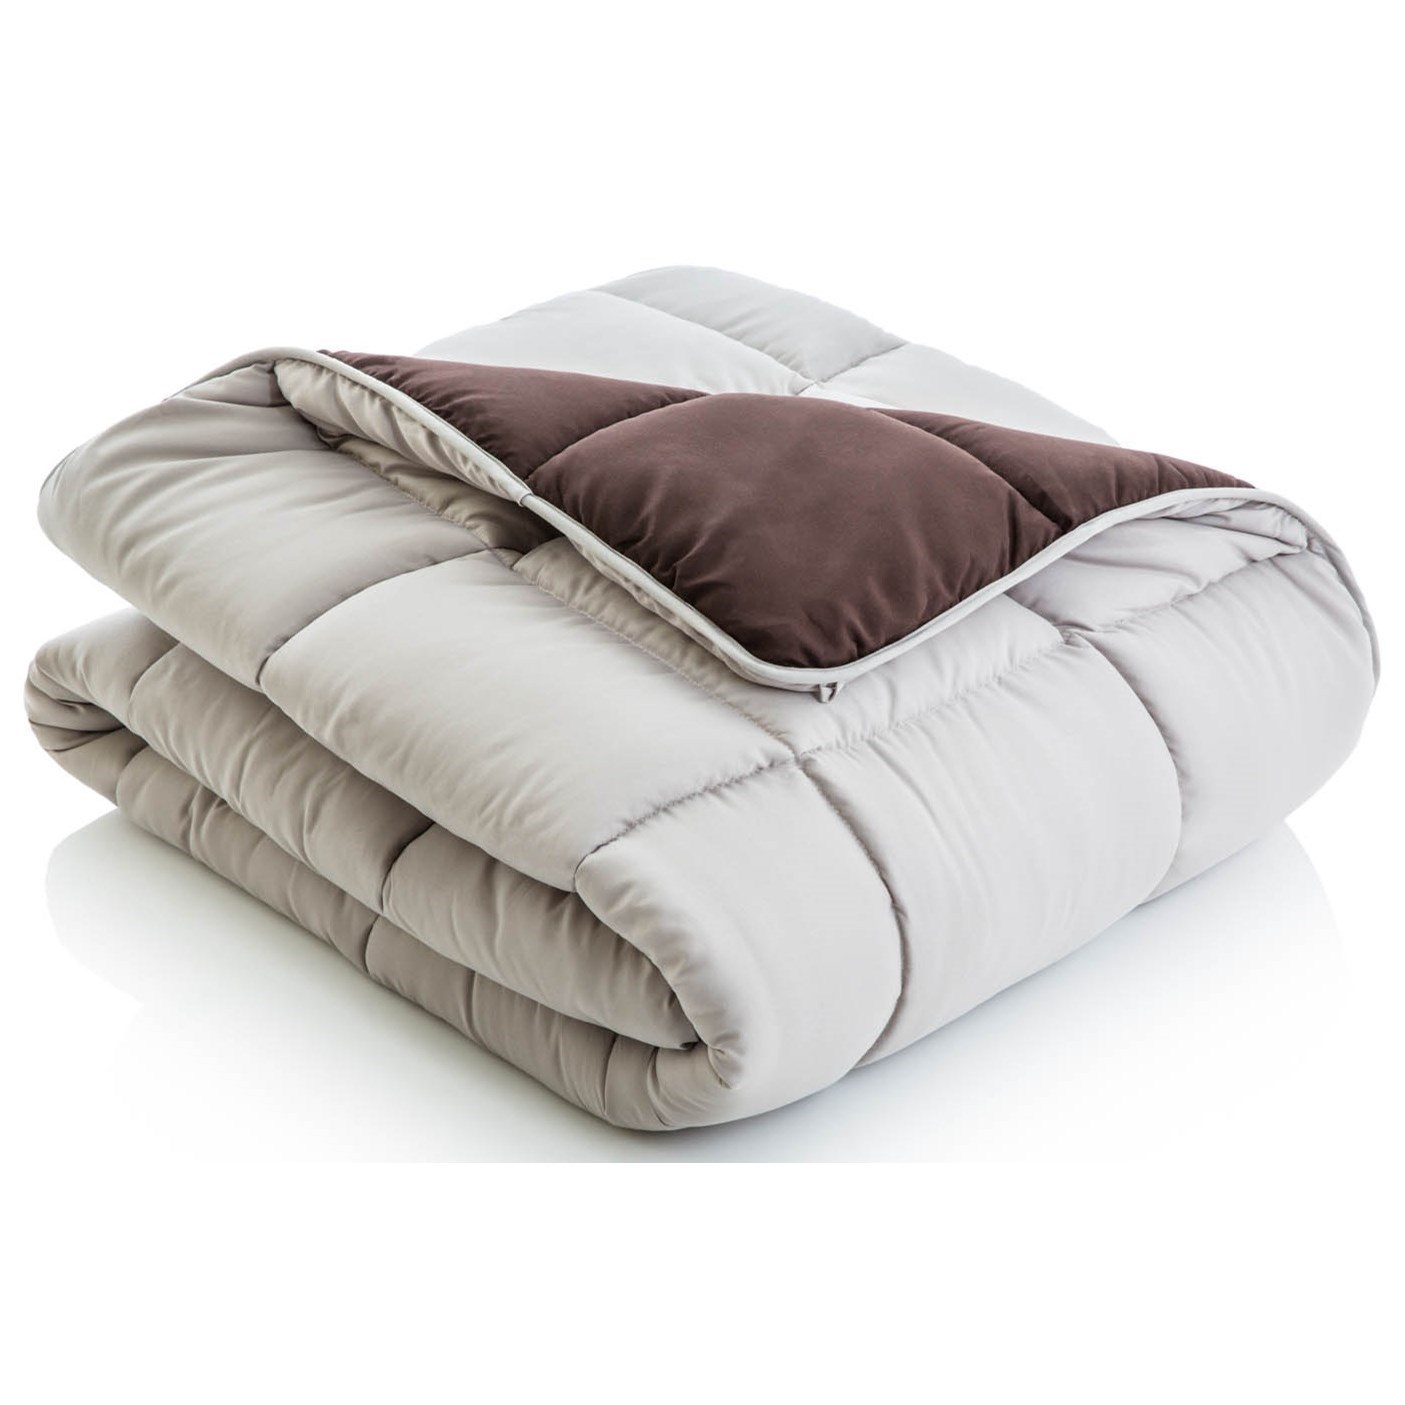 Reversible Bed in a Bag Full Reversible Bed in a Bag by Malouf at Home Furnishings Direct